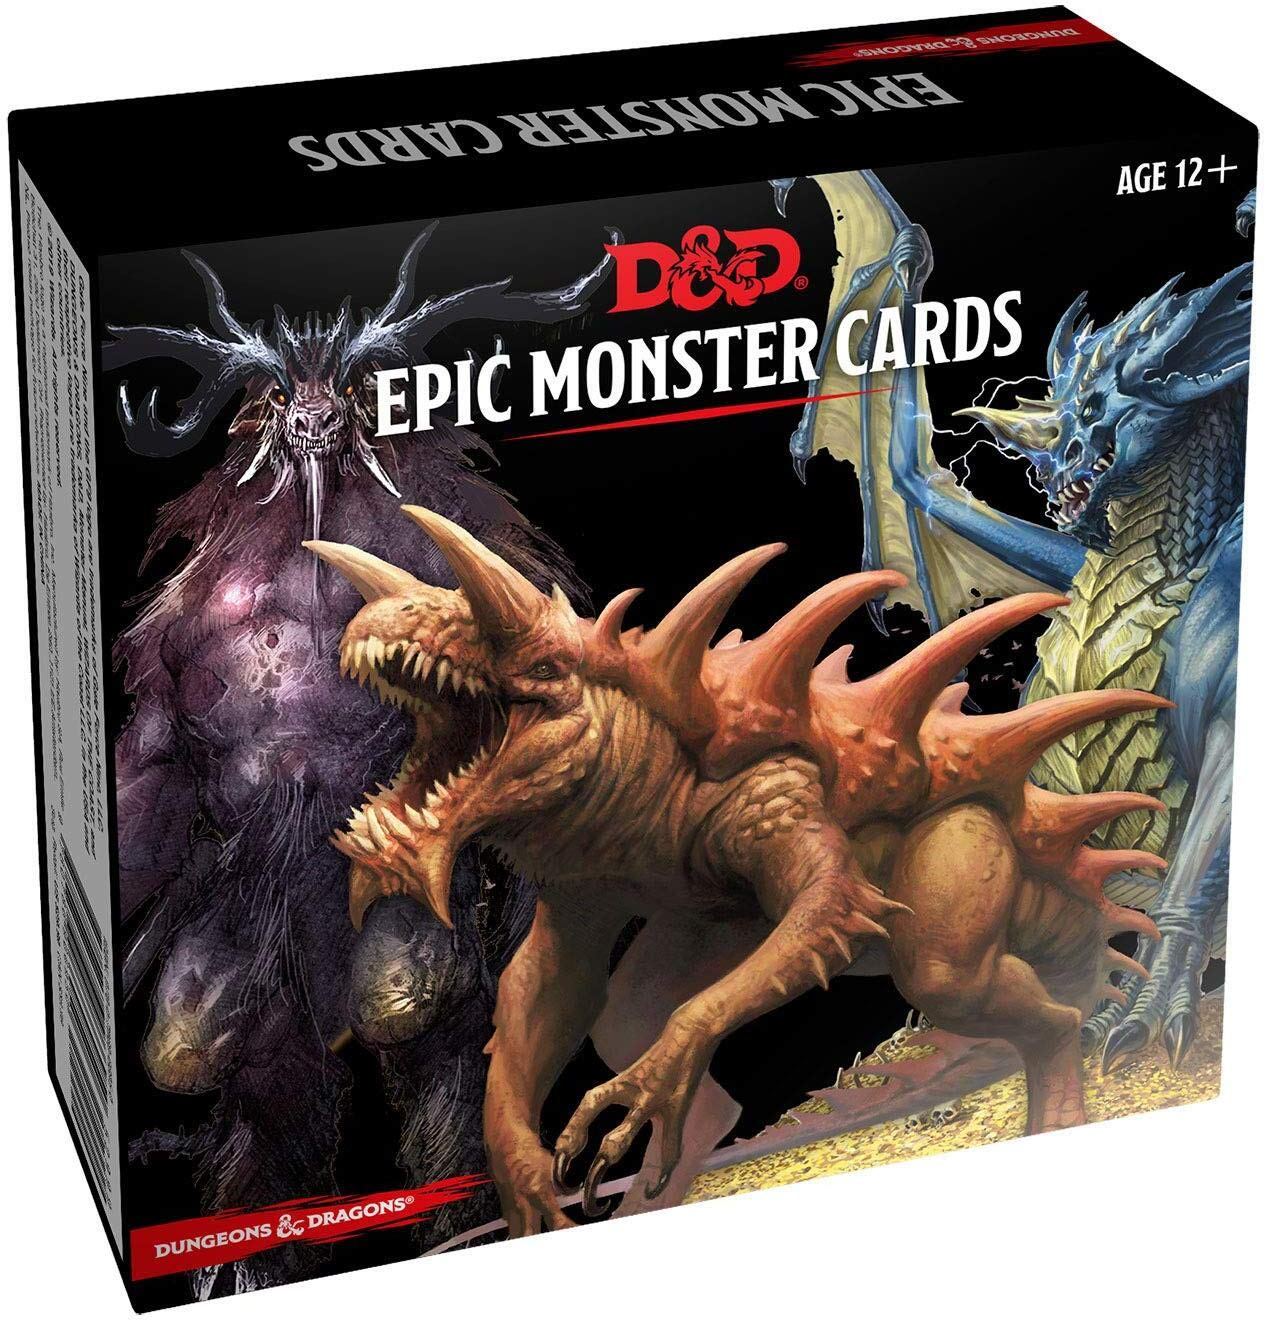 Dungeons & Dragons Spellbook Cards: Epic Monsters (D&D Accessory) by Wizards of the Coast